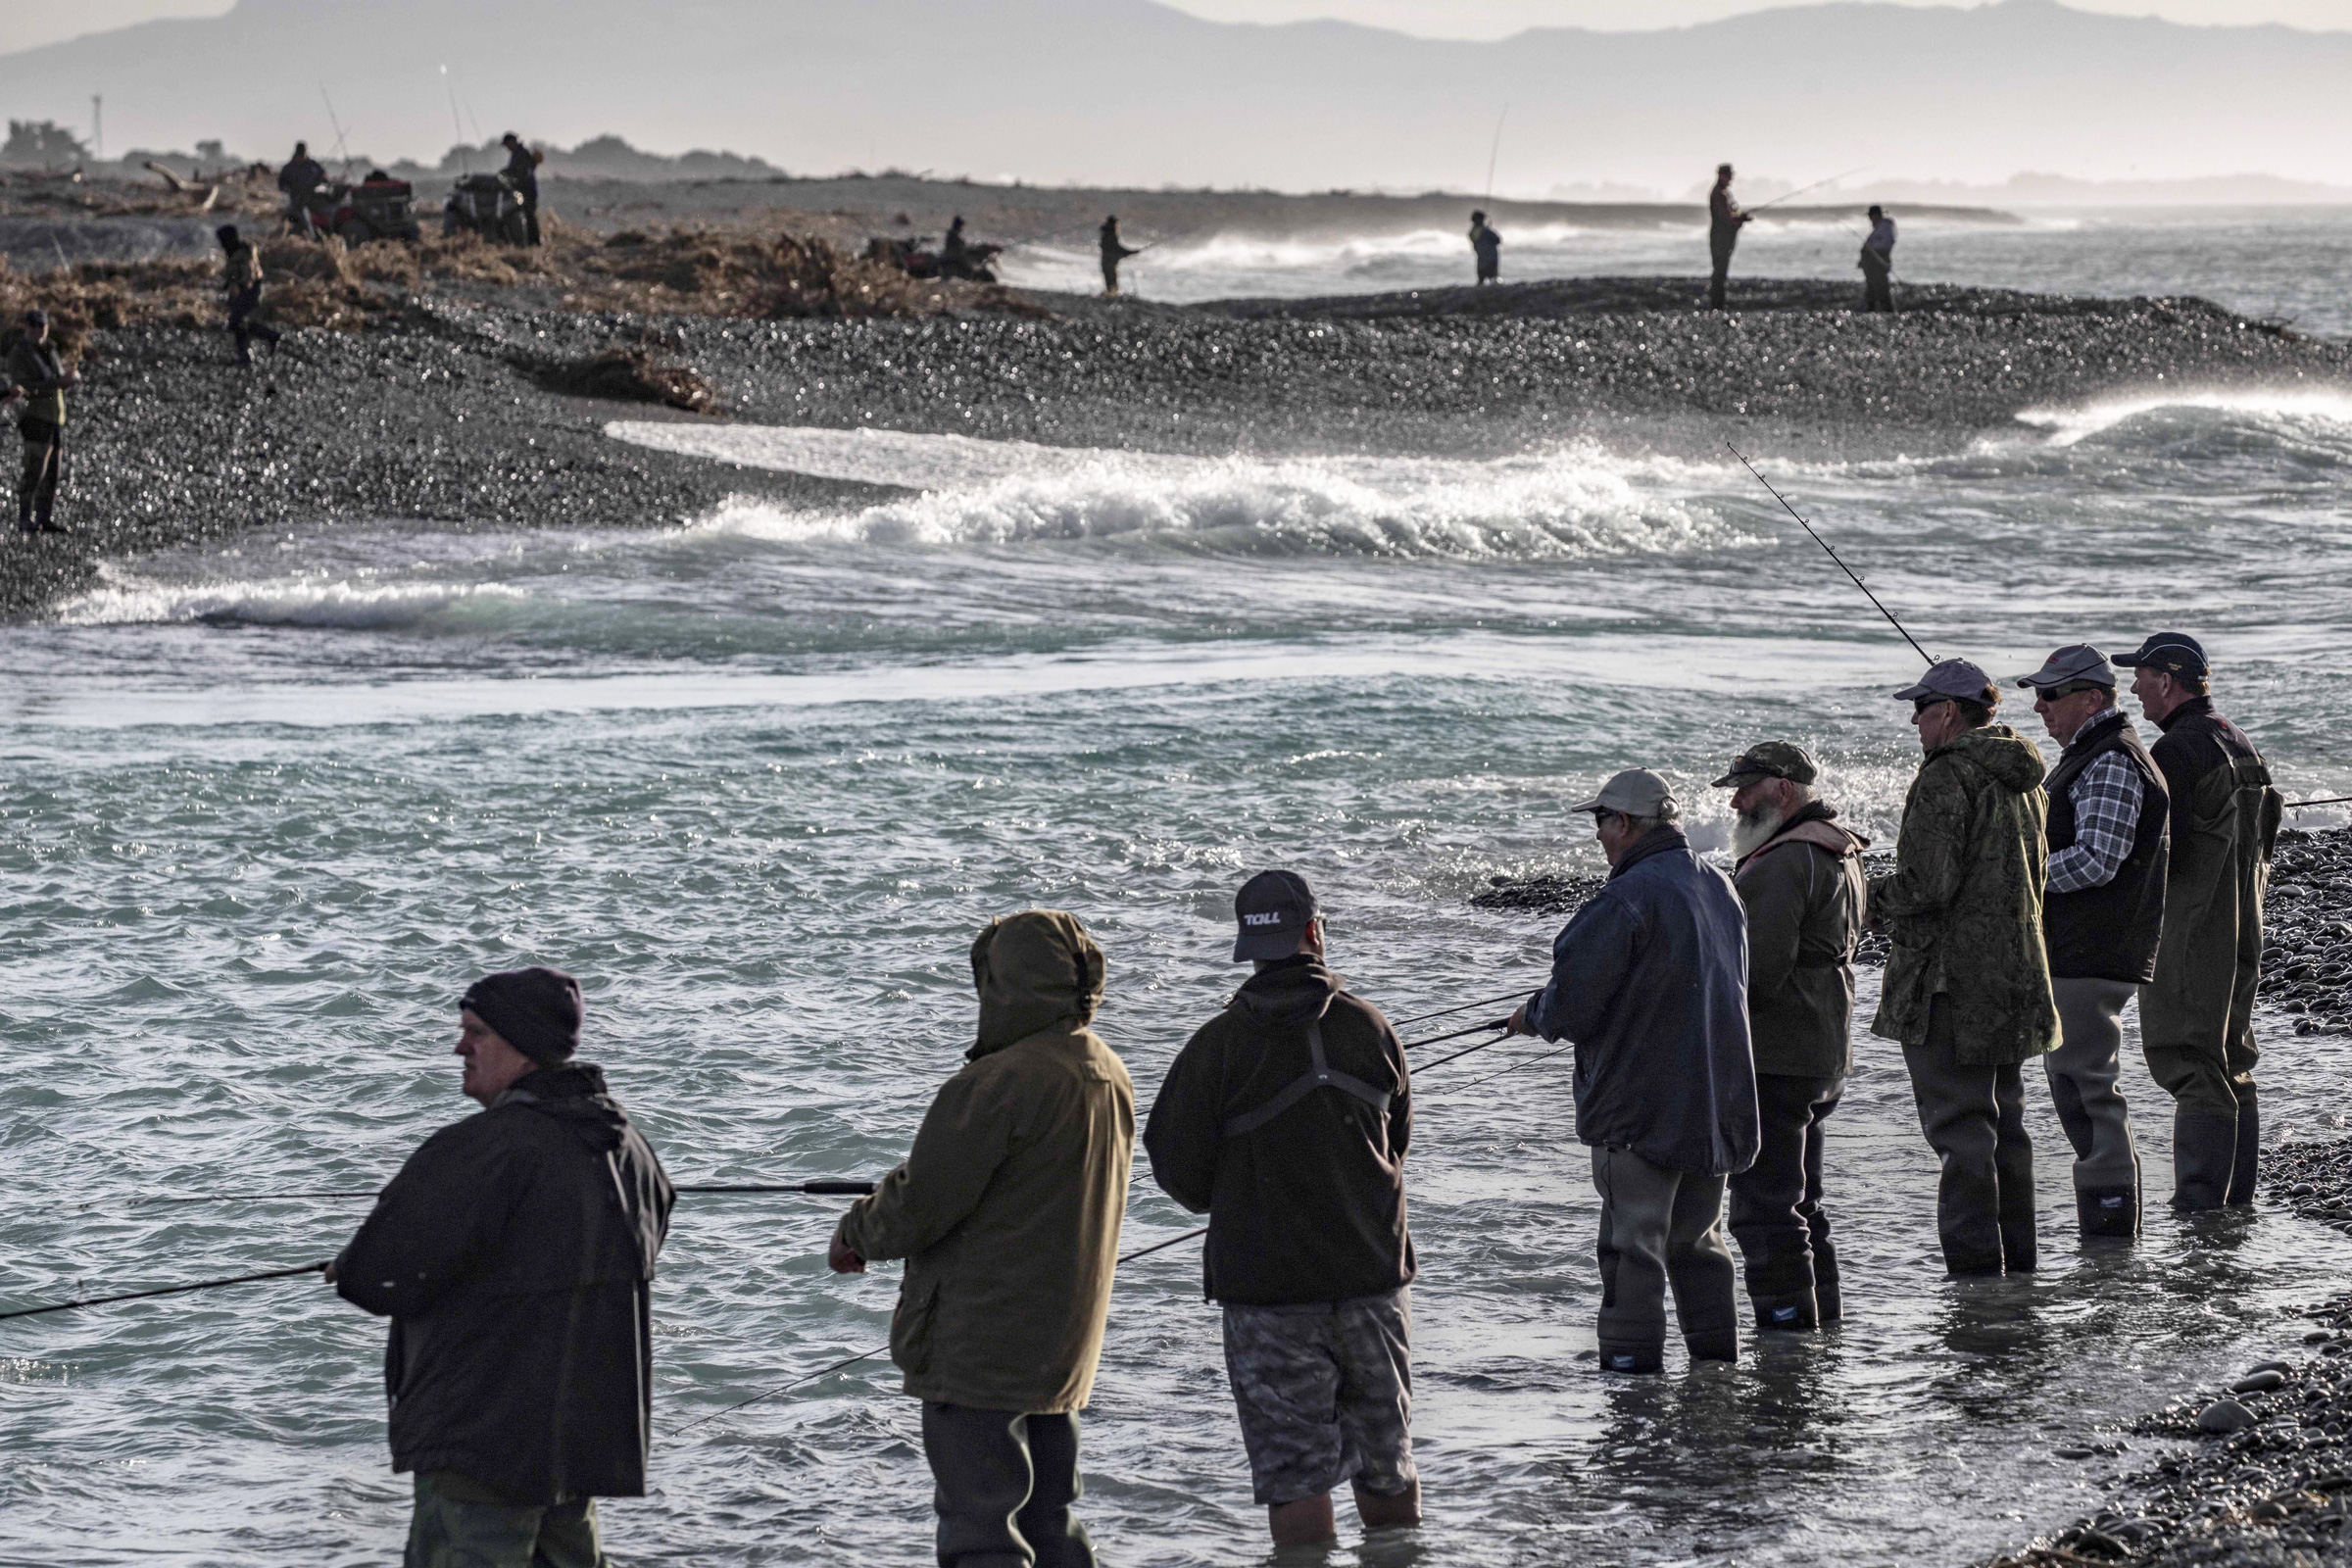 New rules aim to protect salmon fishery